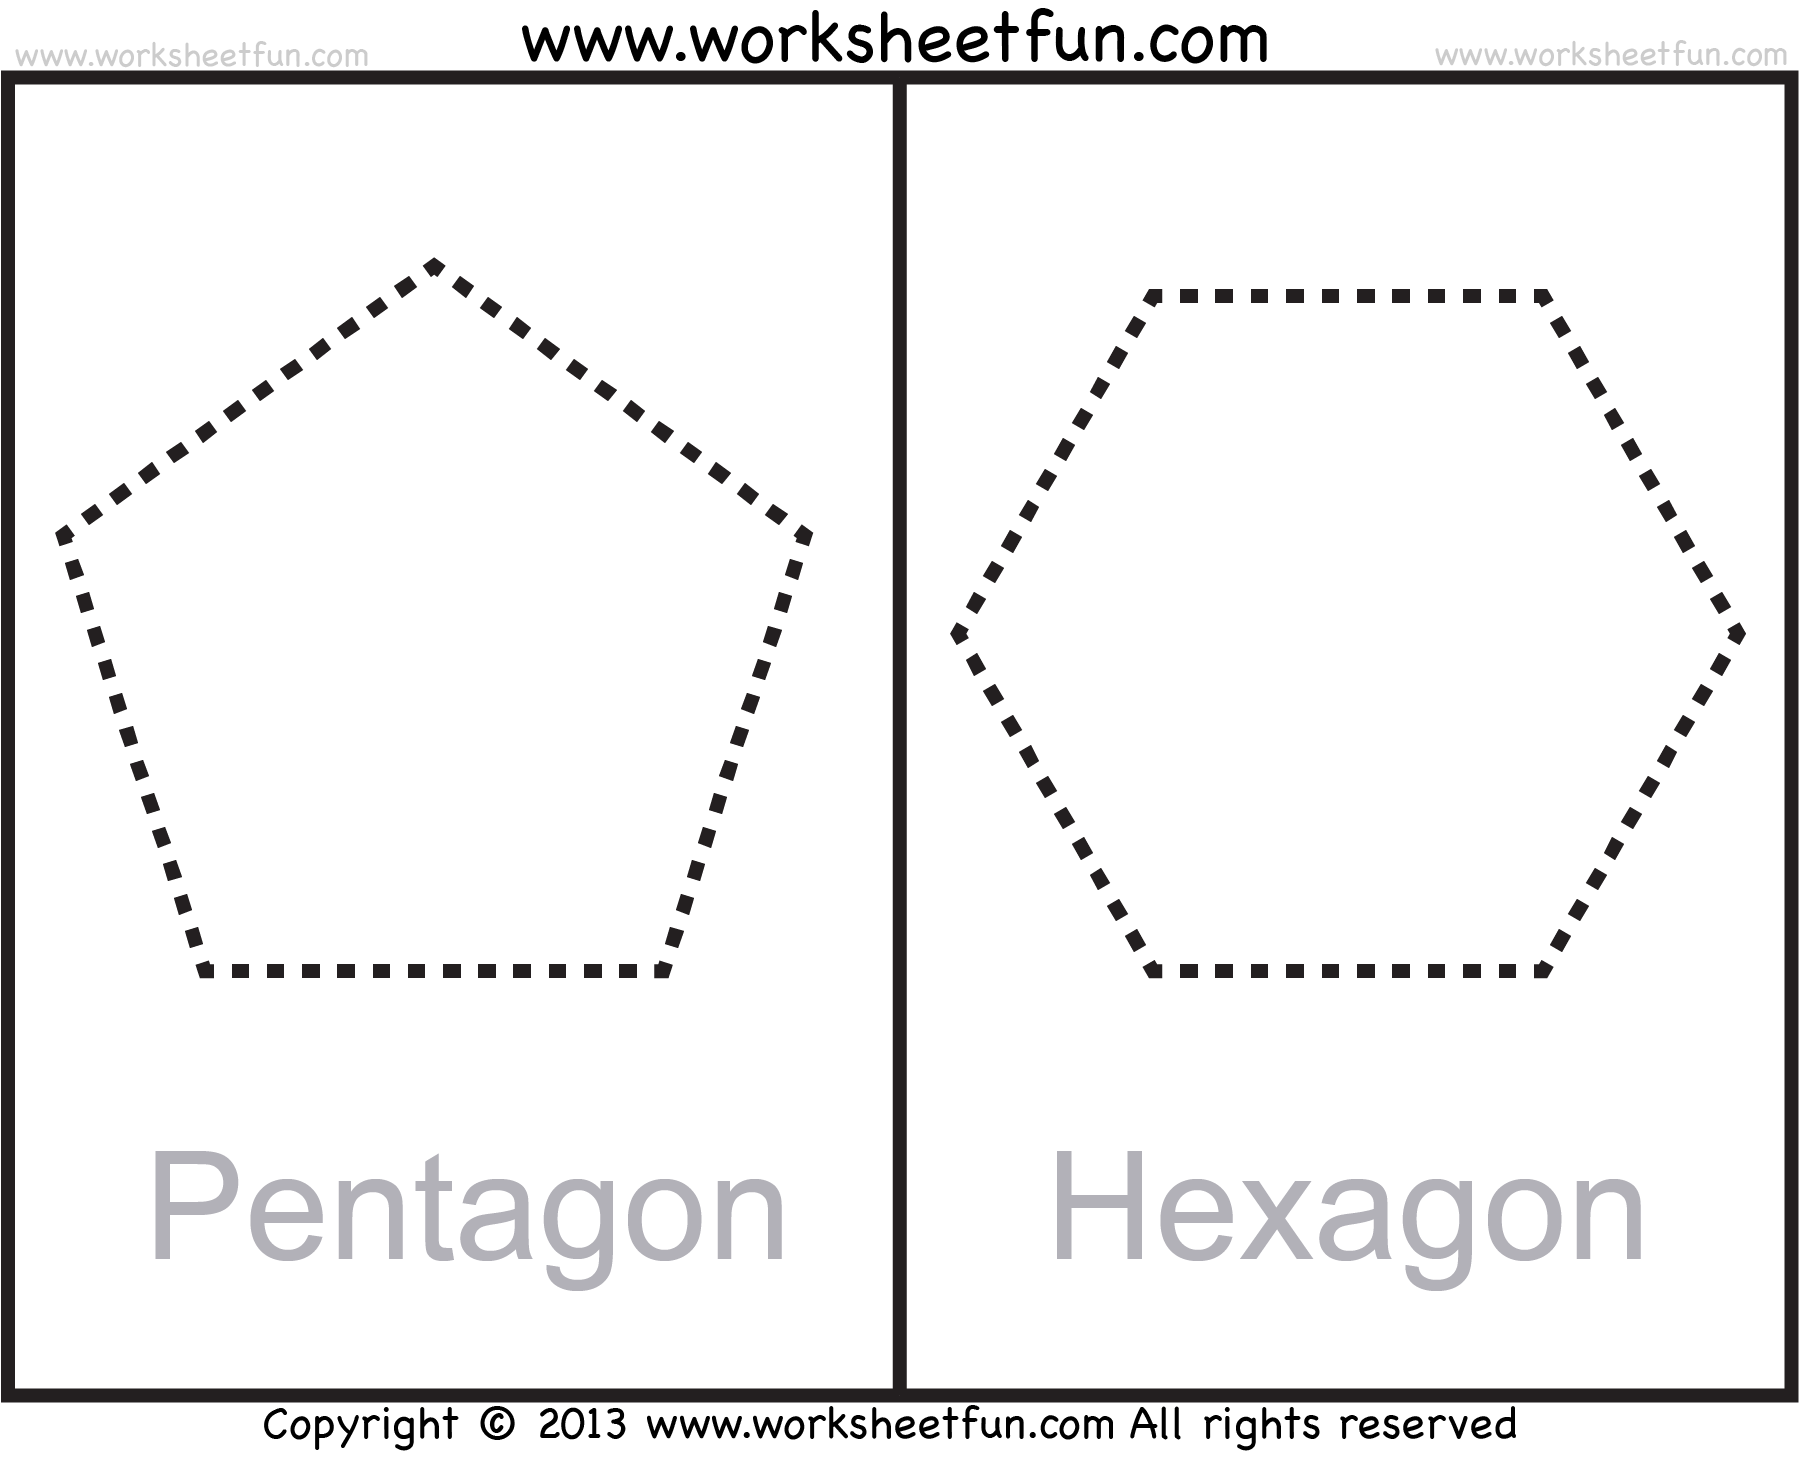 Shapes Polygons Pentagon Hexagon Heptagon Octagon Nonagon Decagon 11 Worksheets Free